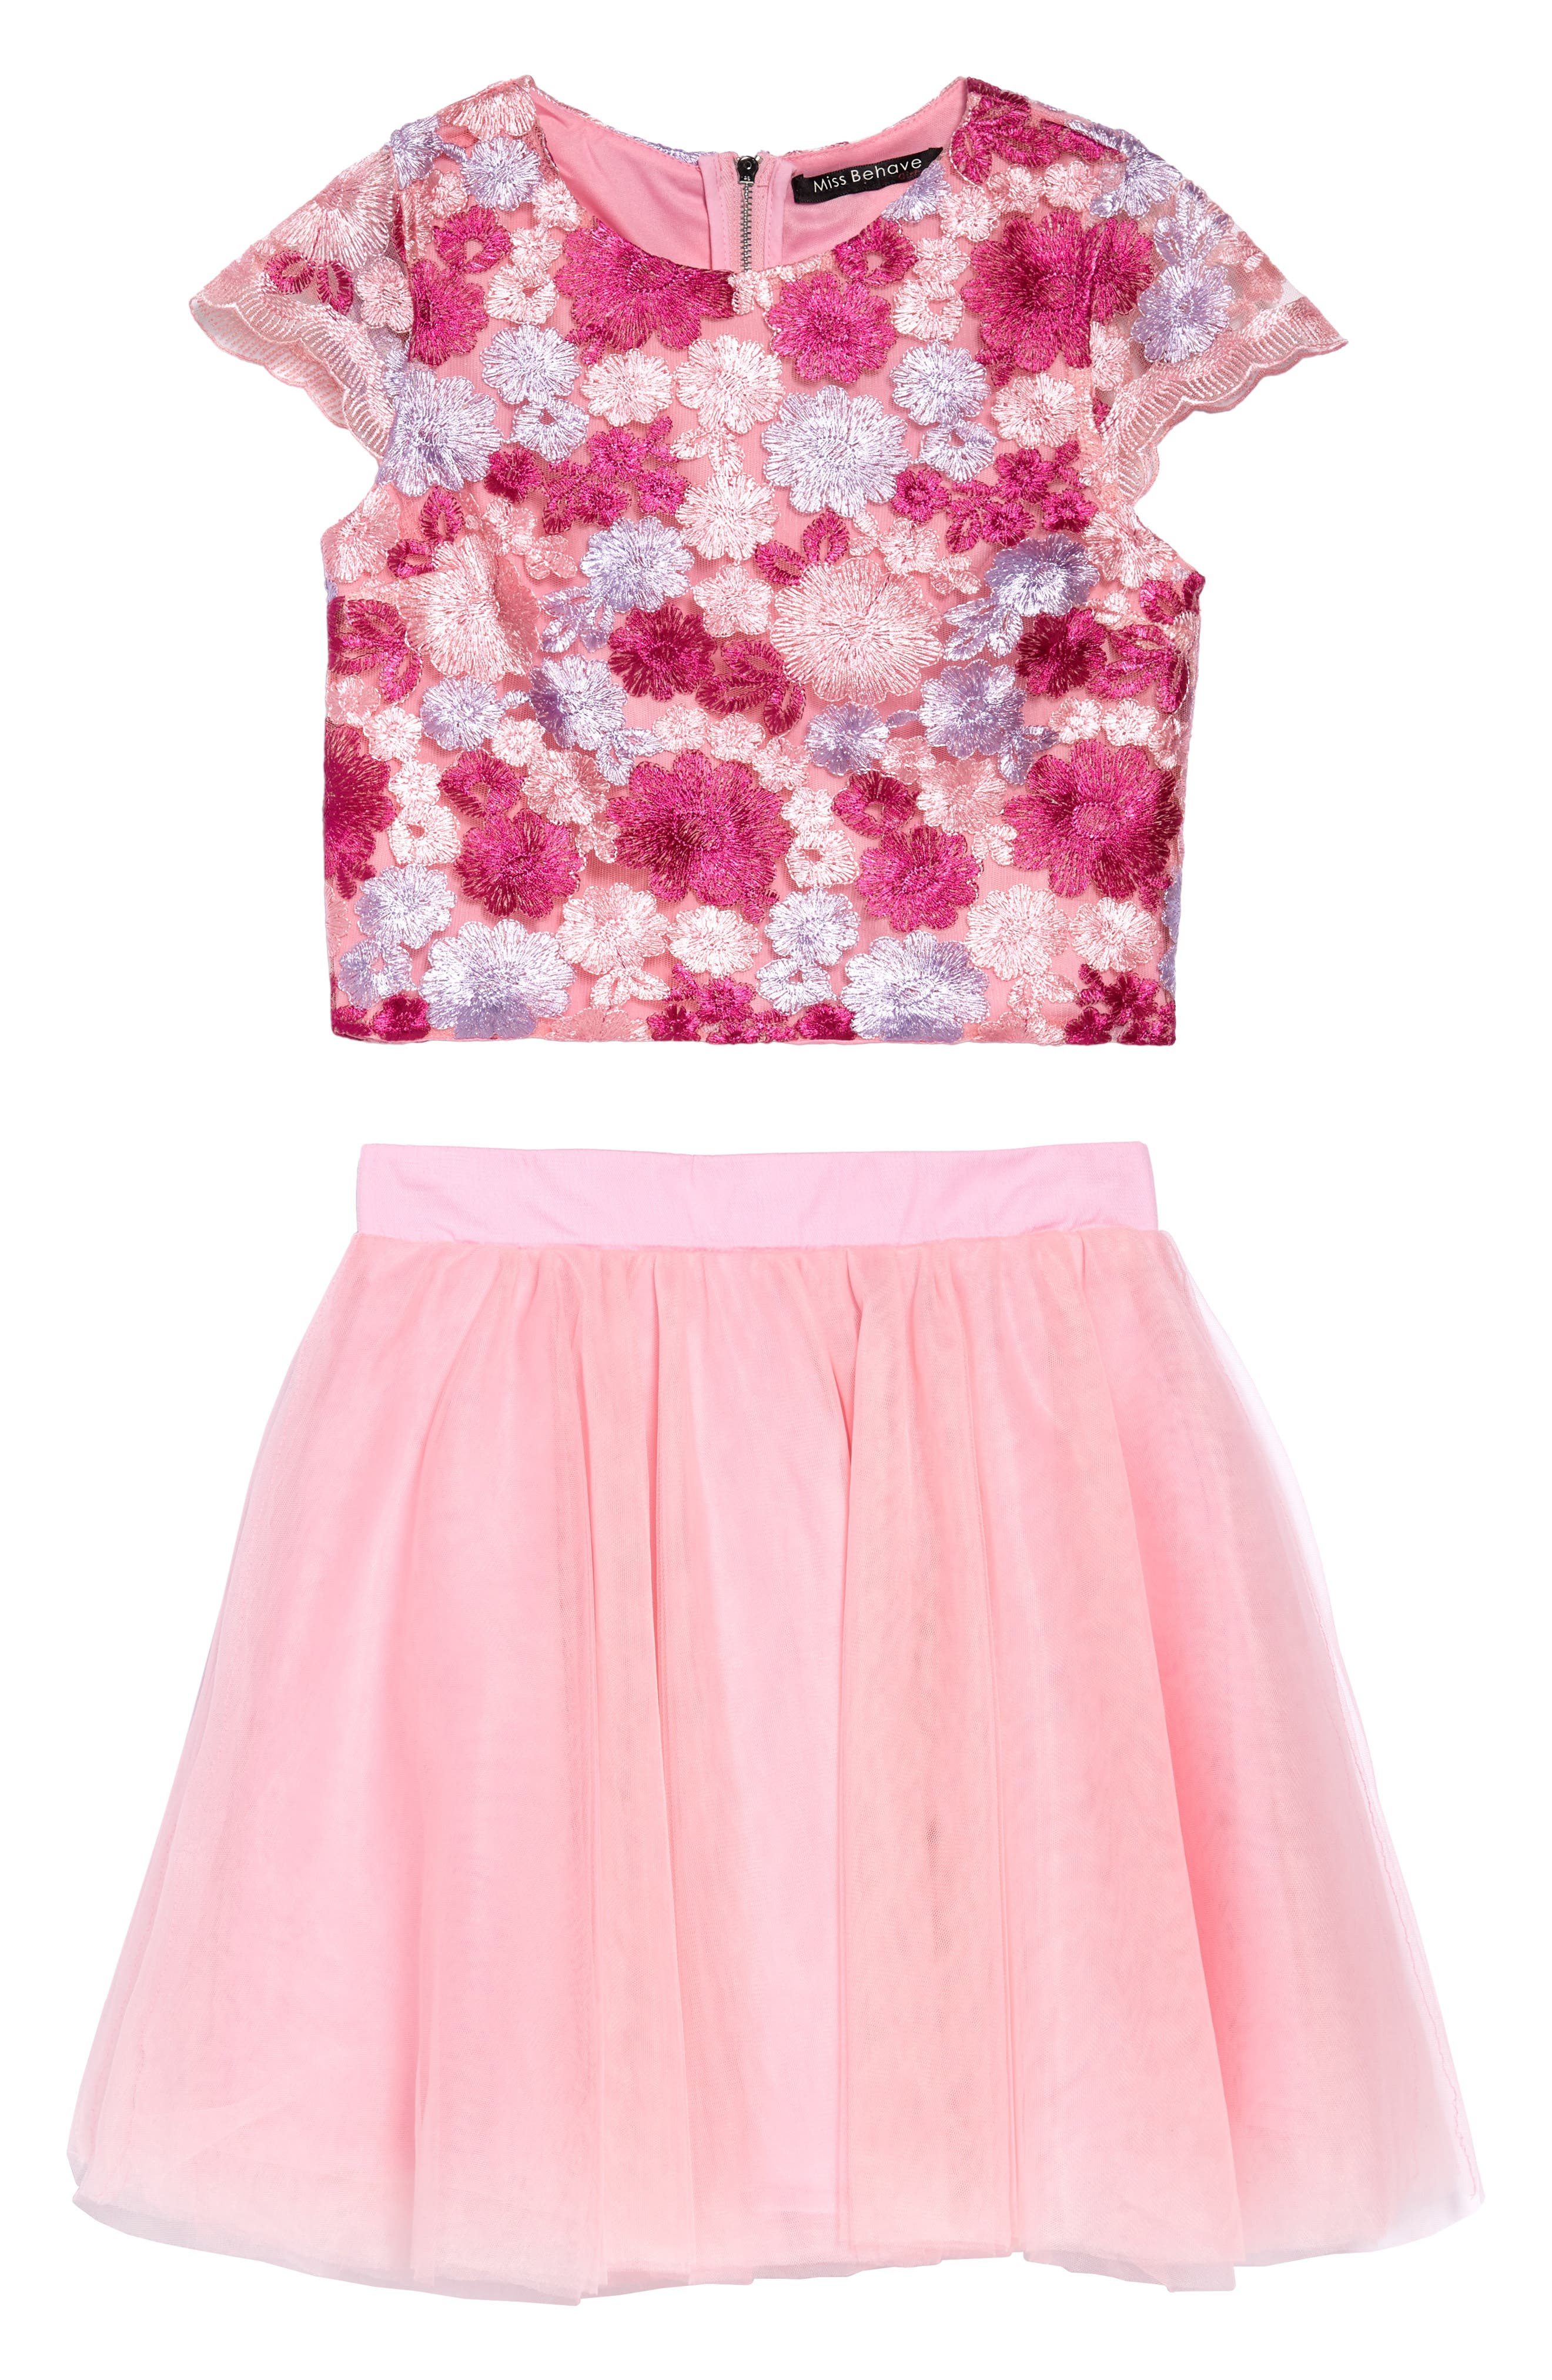 Miss Behave Brooke Embroidered Top & Tulle Skirt Set (Big Girls)